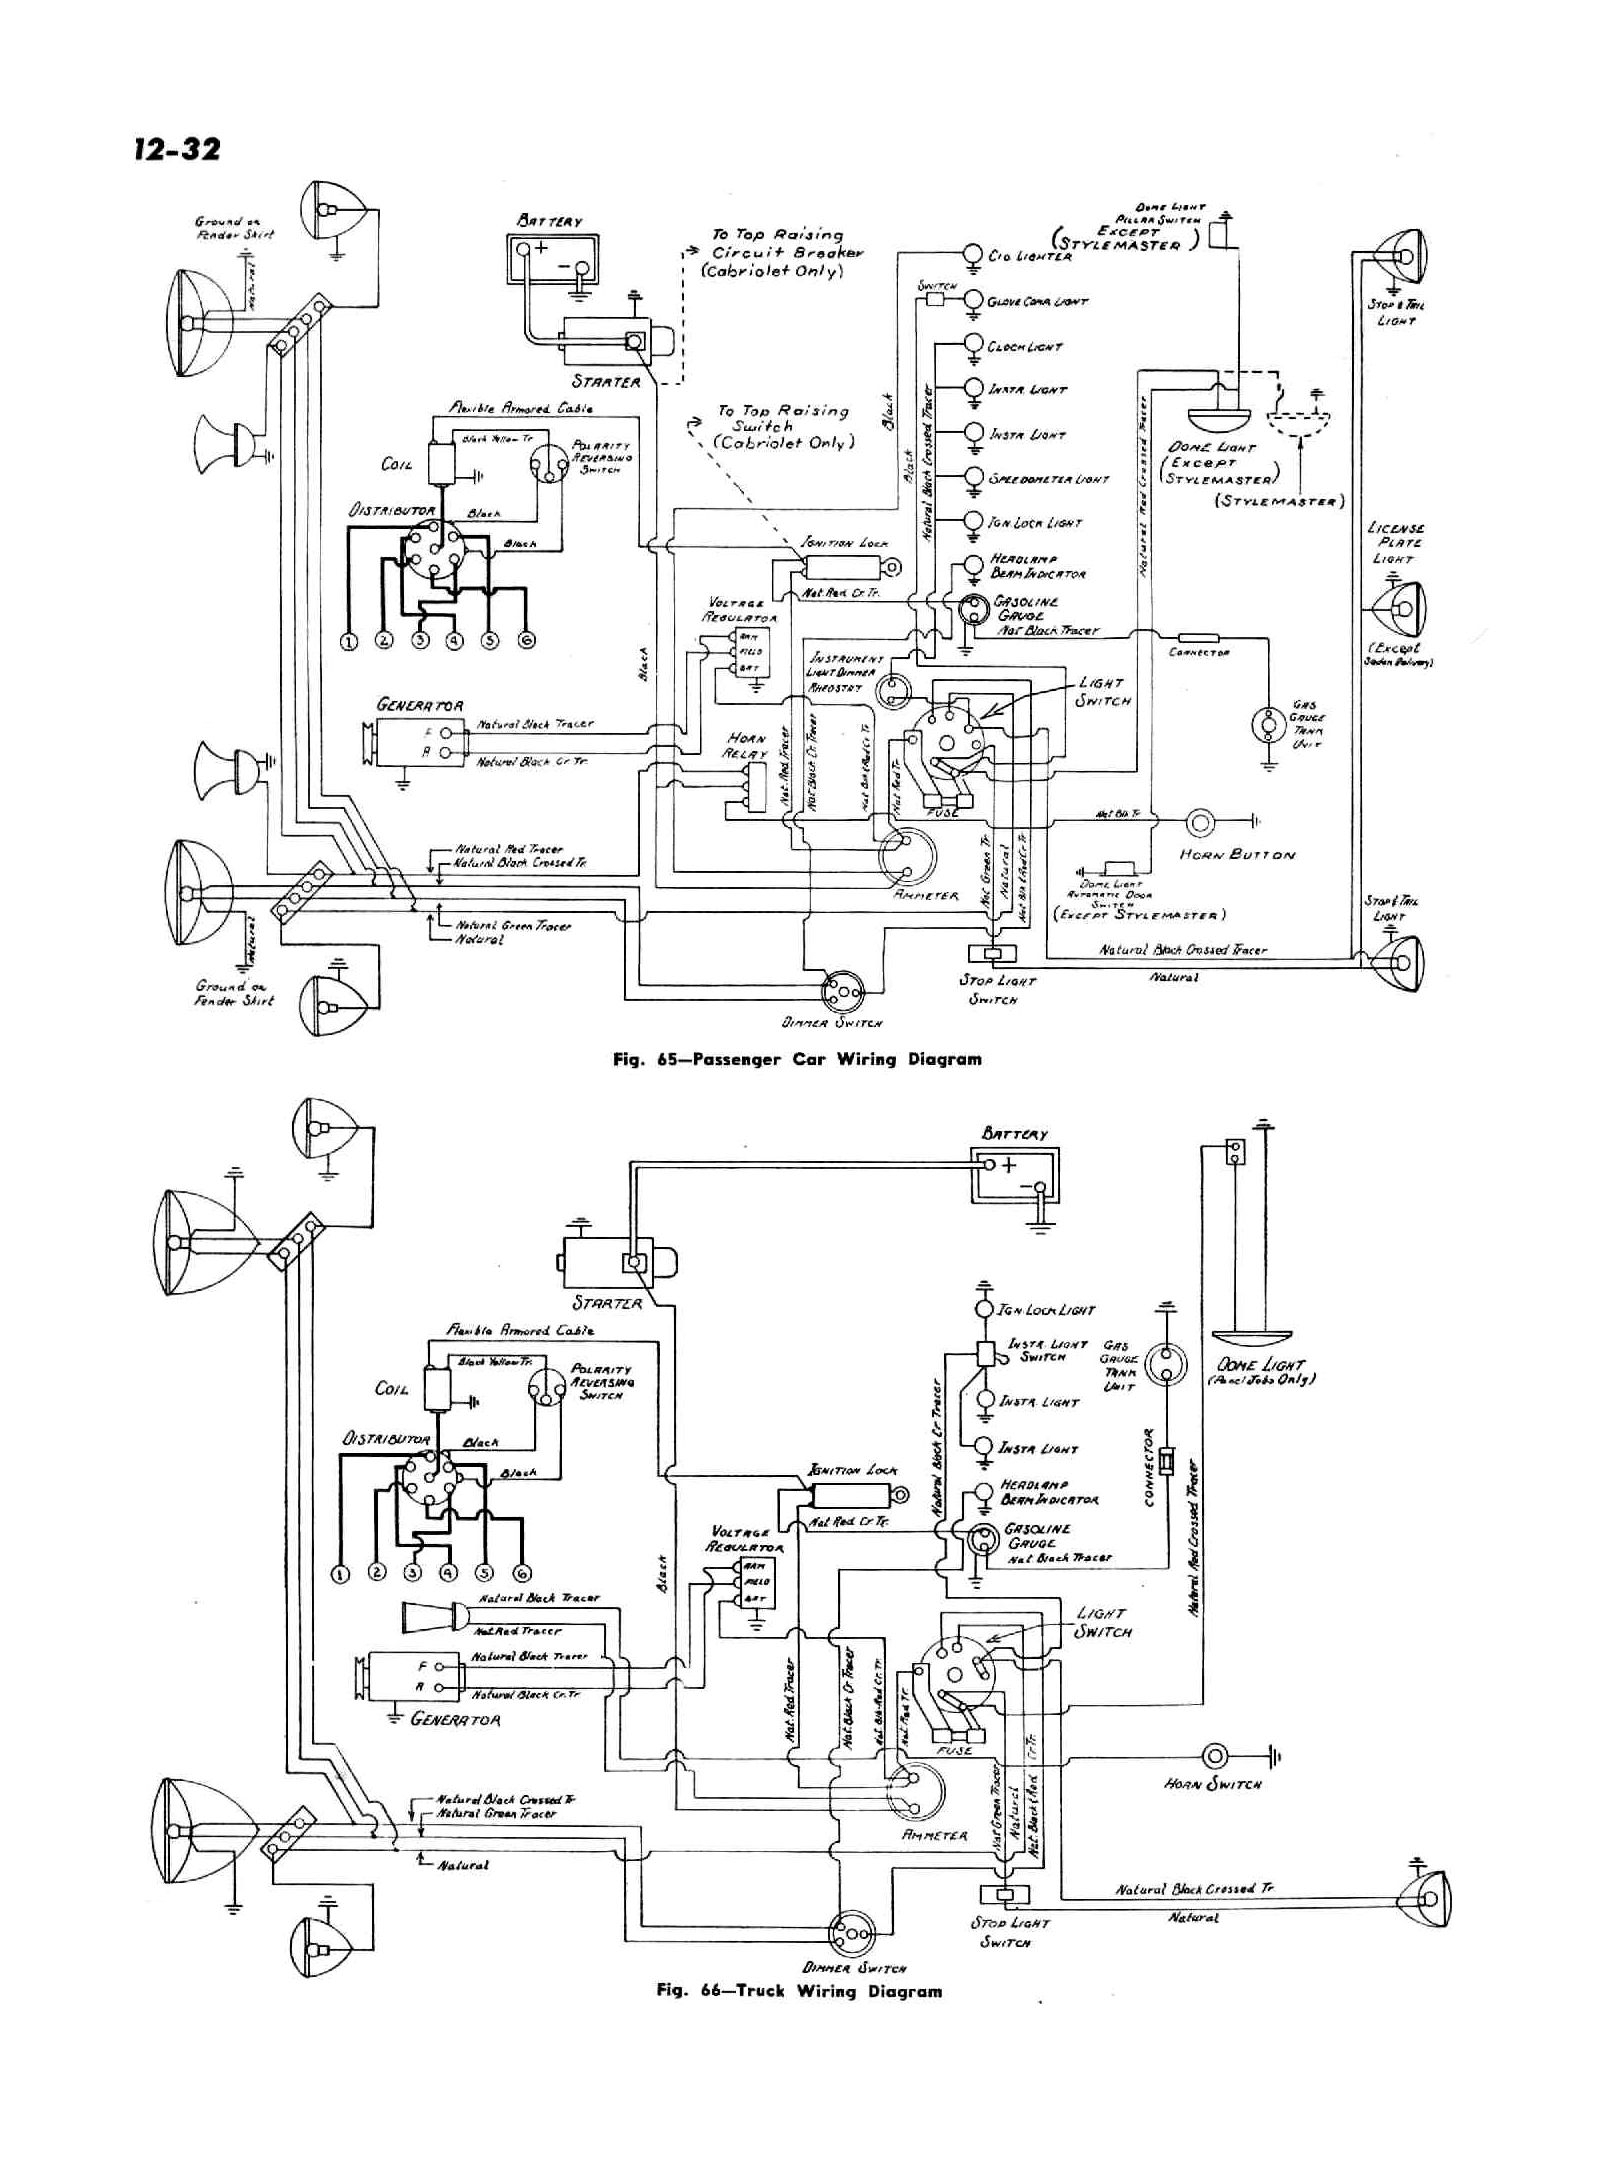 1949 Chevy Coupe Wiring Diagram Trusted 1950 Willys Overland Wire Deluxe Custom U2022 1957